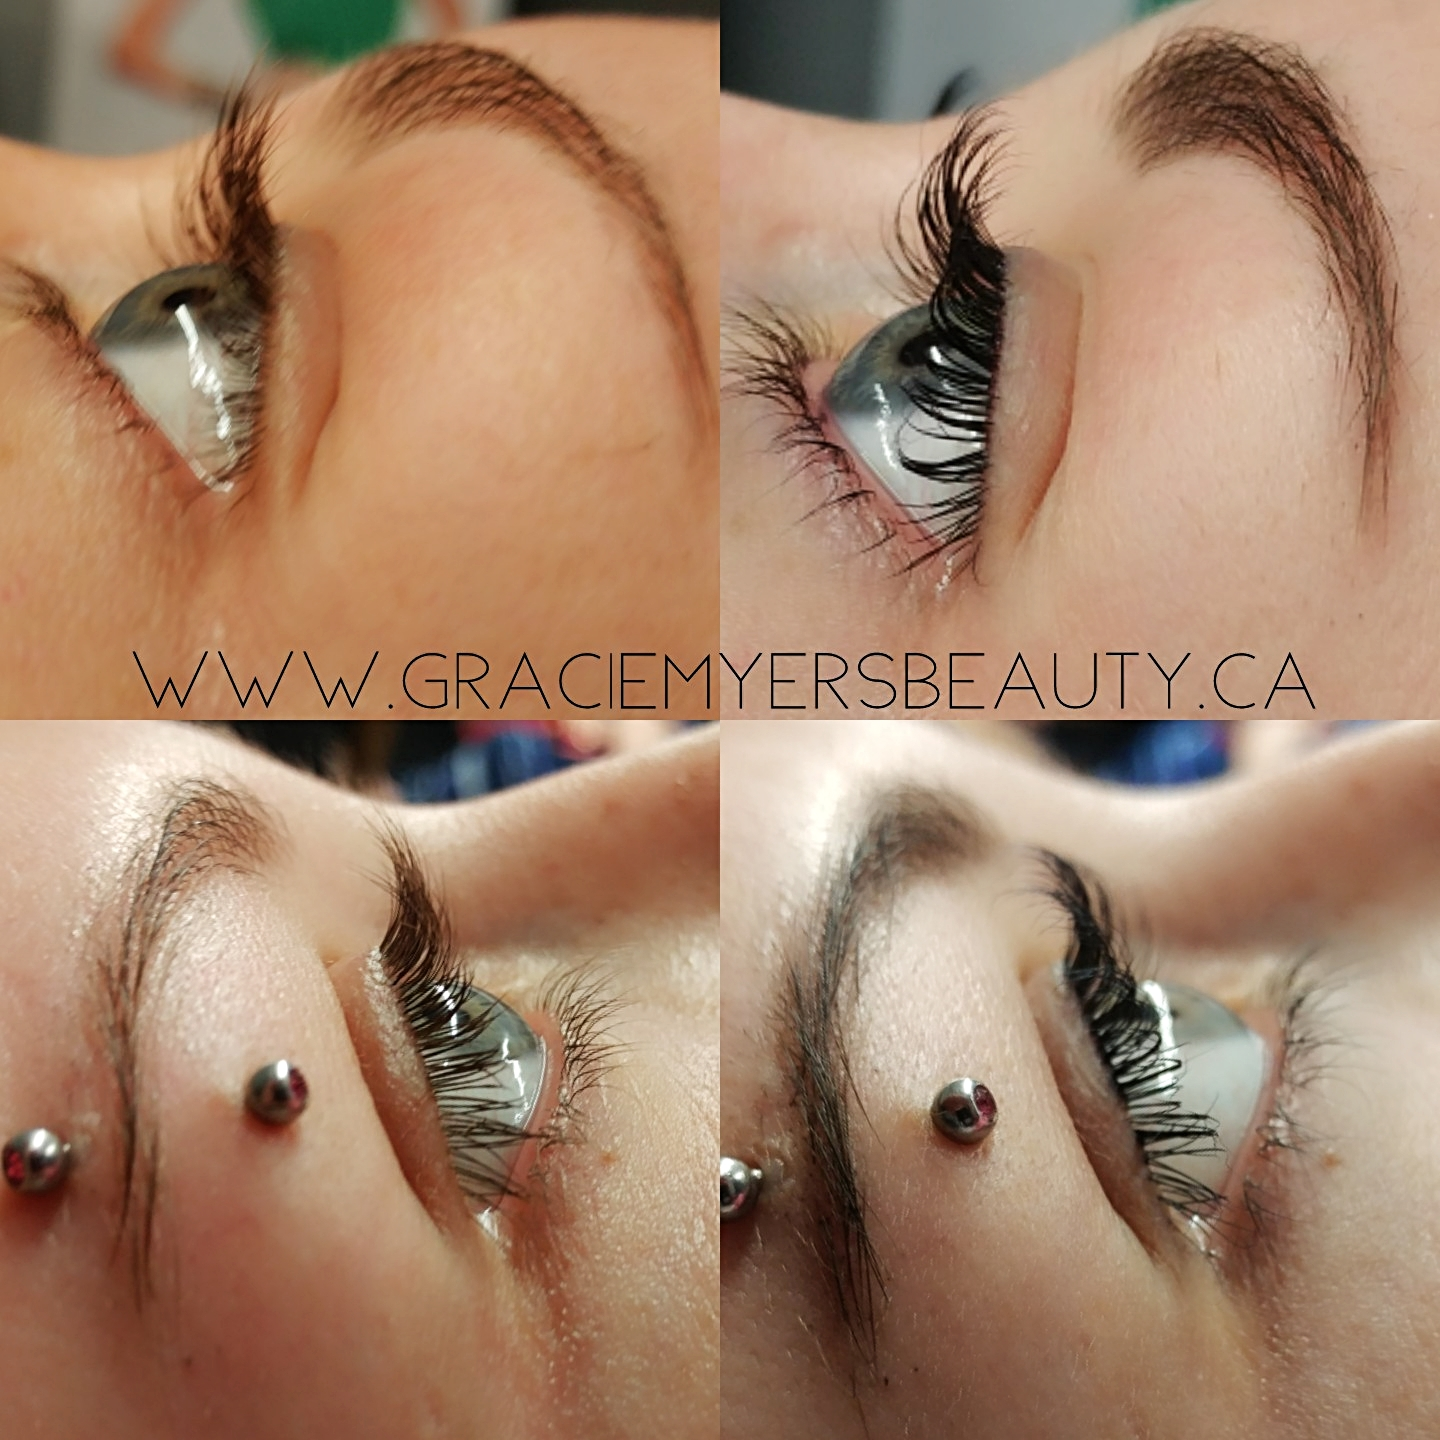 Gracie Myers Beauty - Lash Lift1.jpg